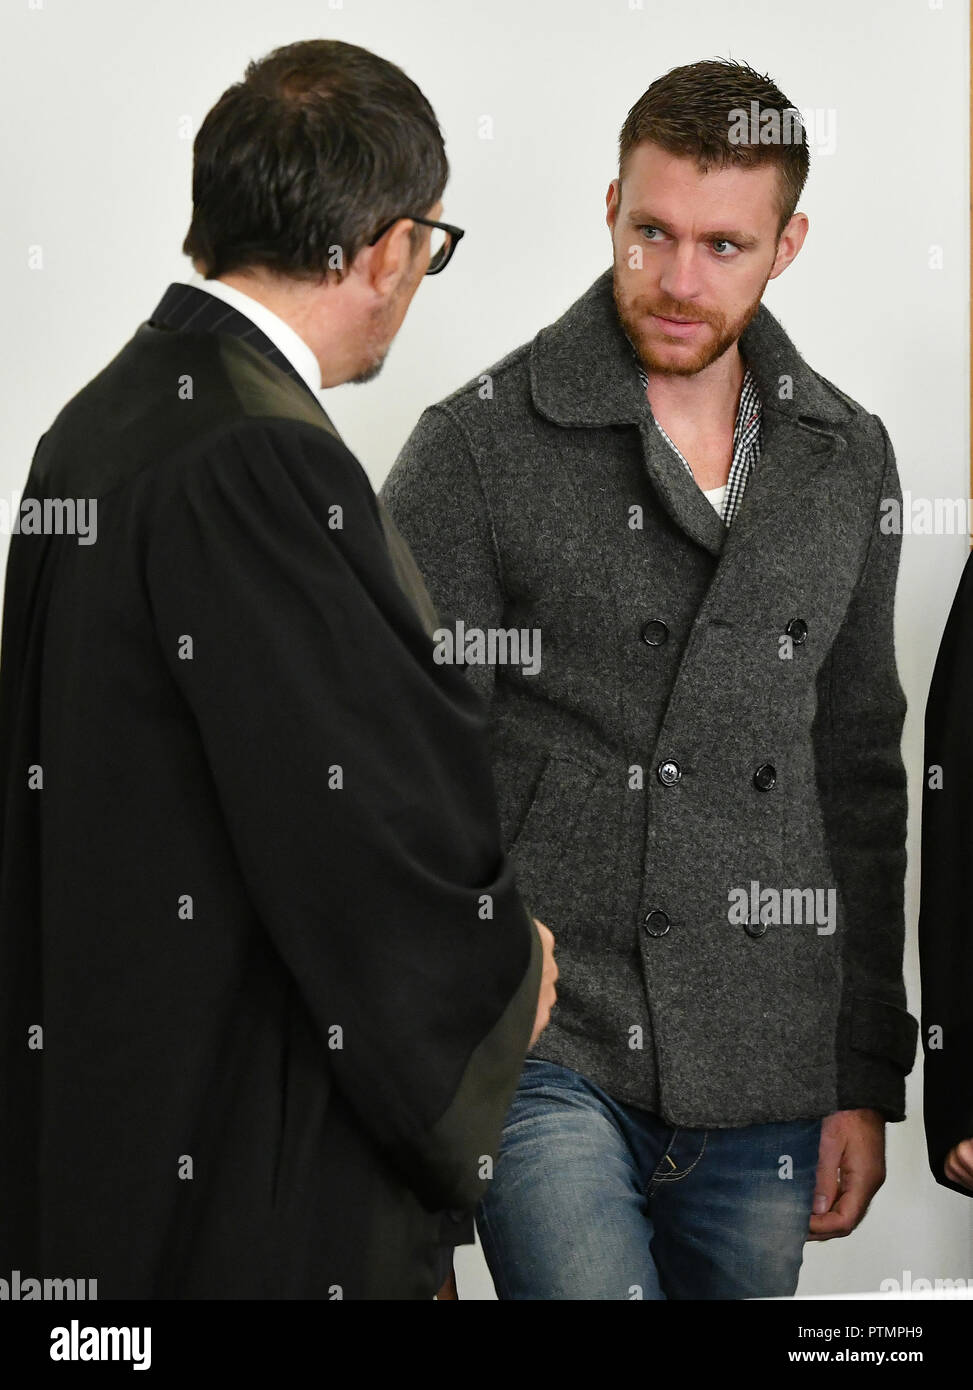 Potsdam, Brandenburg. 10th Oct, 2018. The accused former NPD politician Maik Schneider (r) is talking to his lawyer Oliver Milke in the regional court. He was sentenced to nine and a half years in prison in an initial trial for an arson attack on a gymnasium in Nauen that was to serve as a refugee shelter. This first verdict was overturned by the Federal Supreme Court because of the bias of a juror. Credit: Bernd Settnik/dpa-Zentralbild/dpa/Alamy Live News - Stock Image